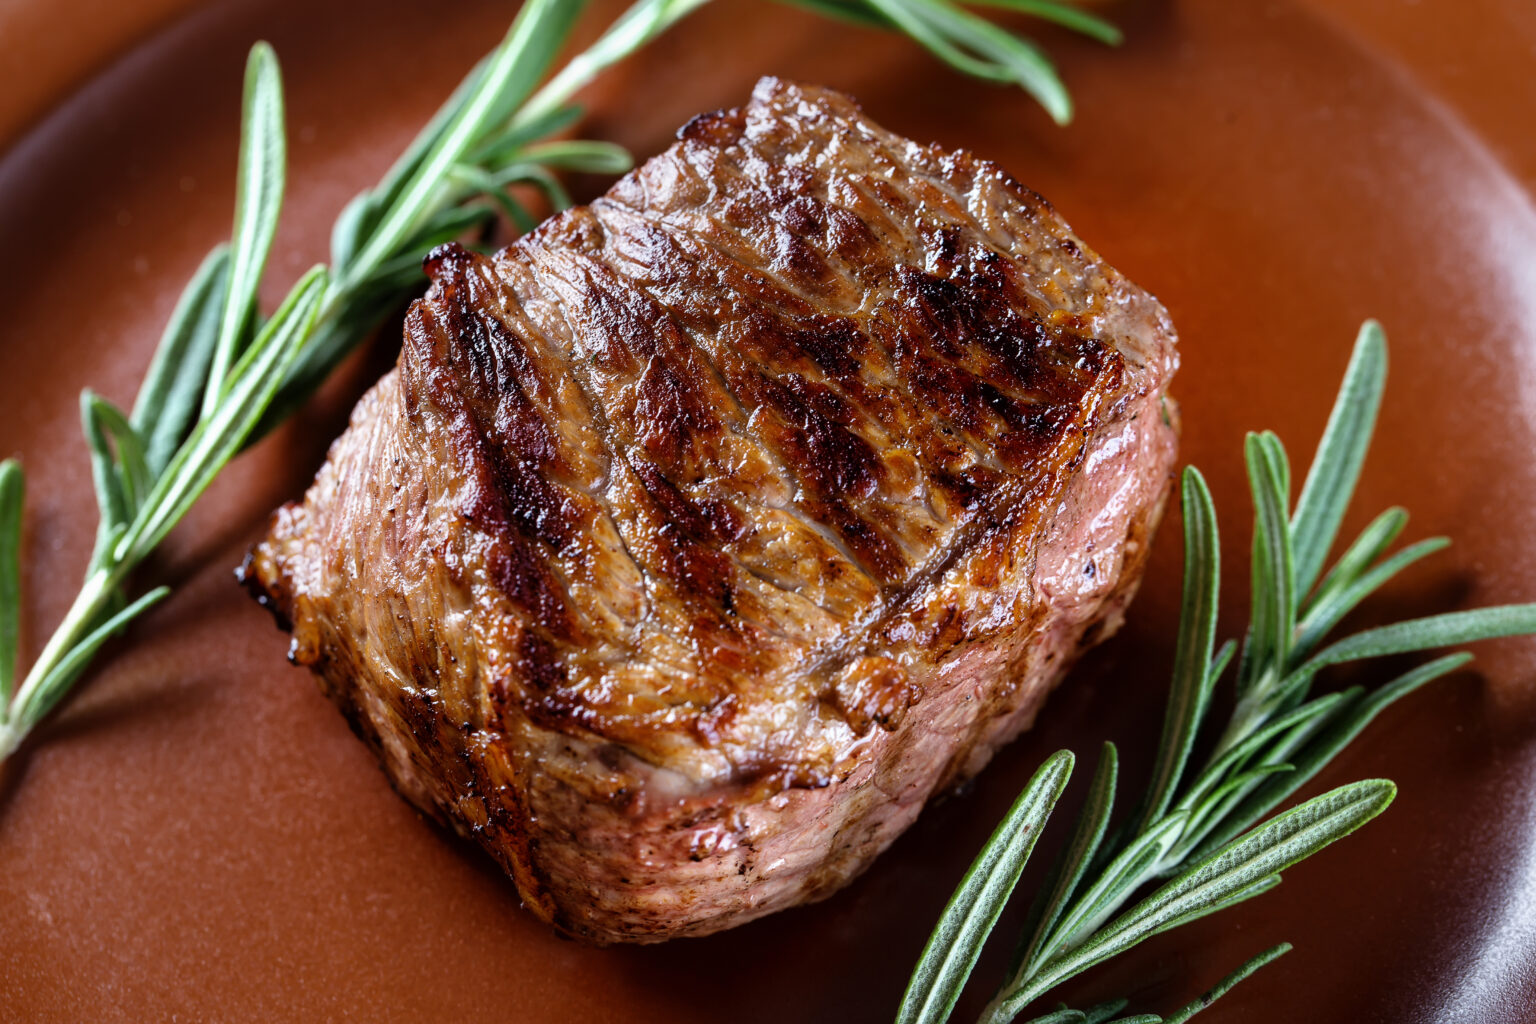 Piece of juicy roast meat with rosemary on a clay plate. The concept of natural food.